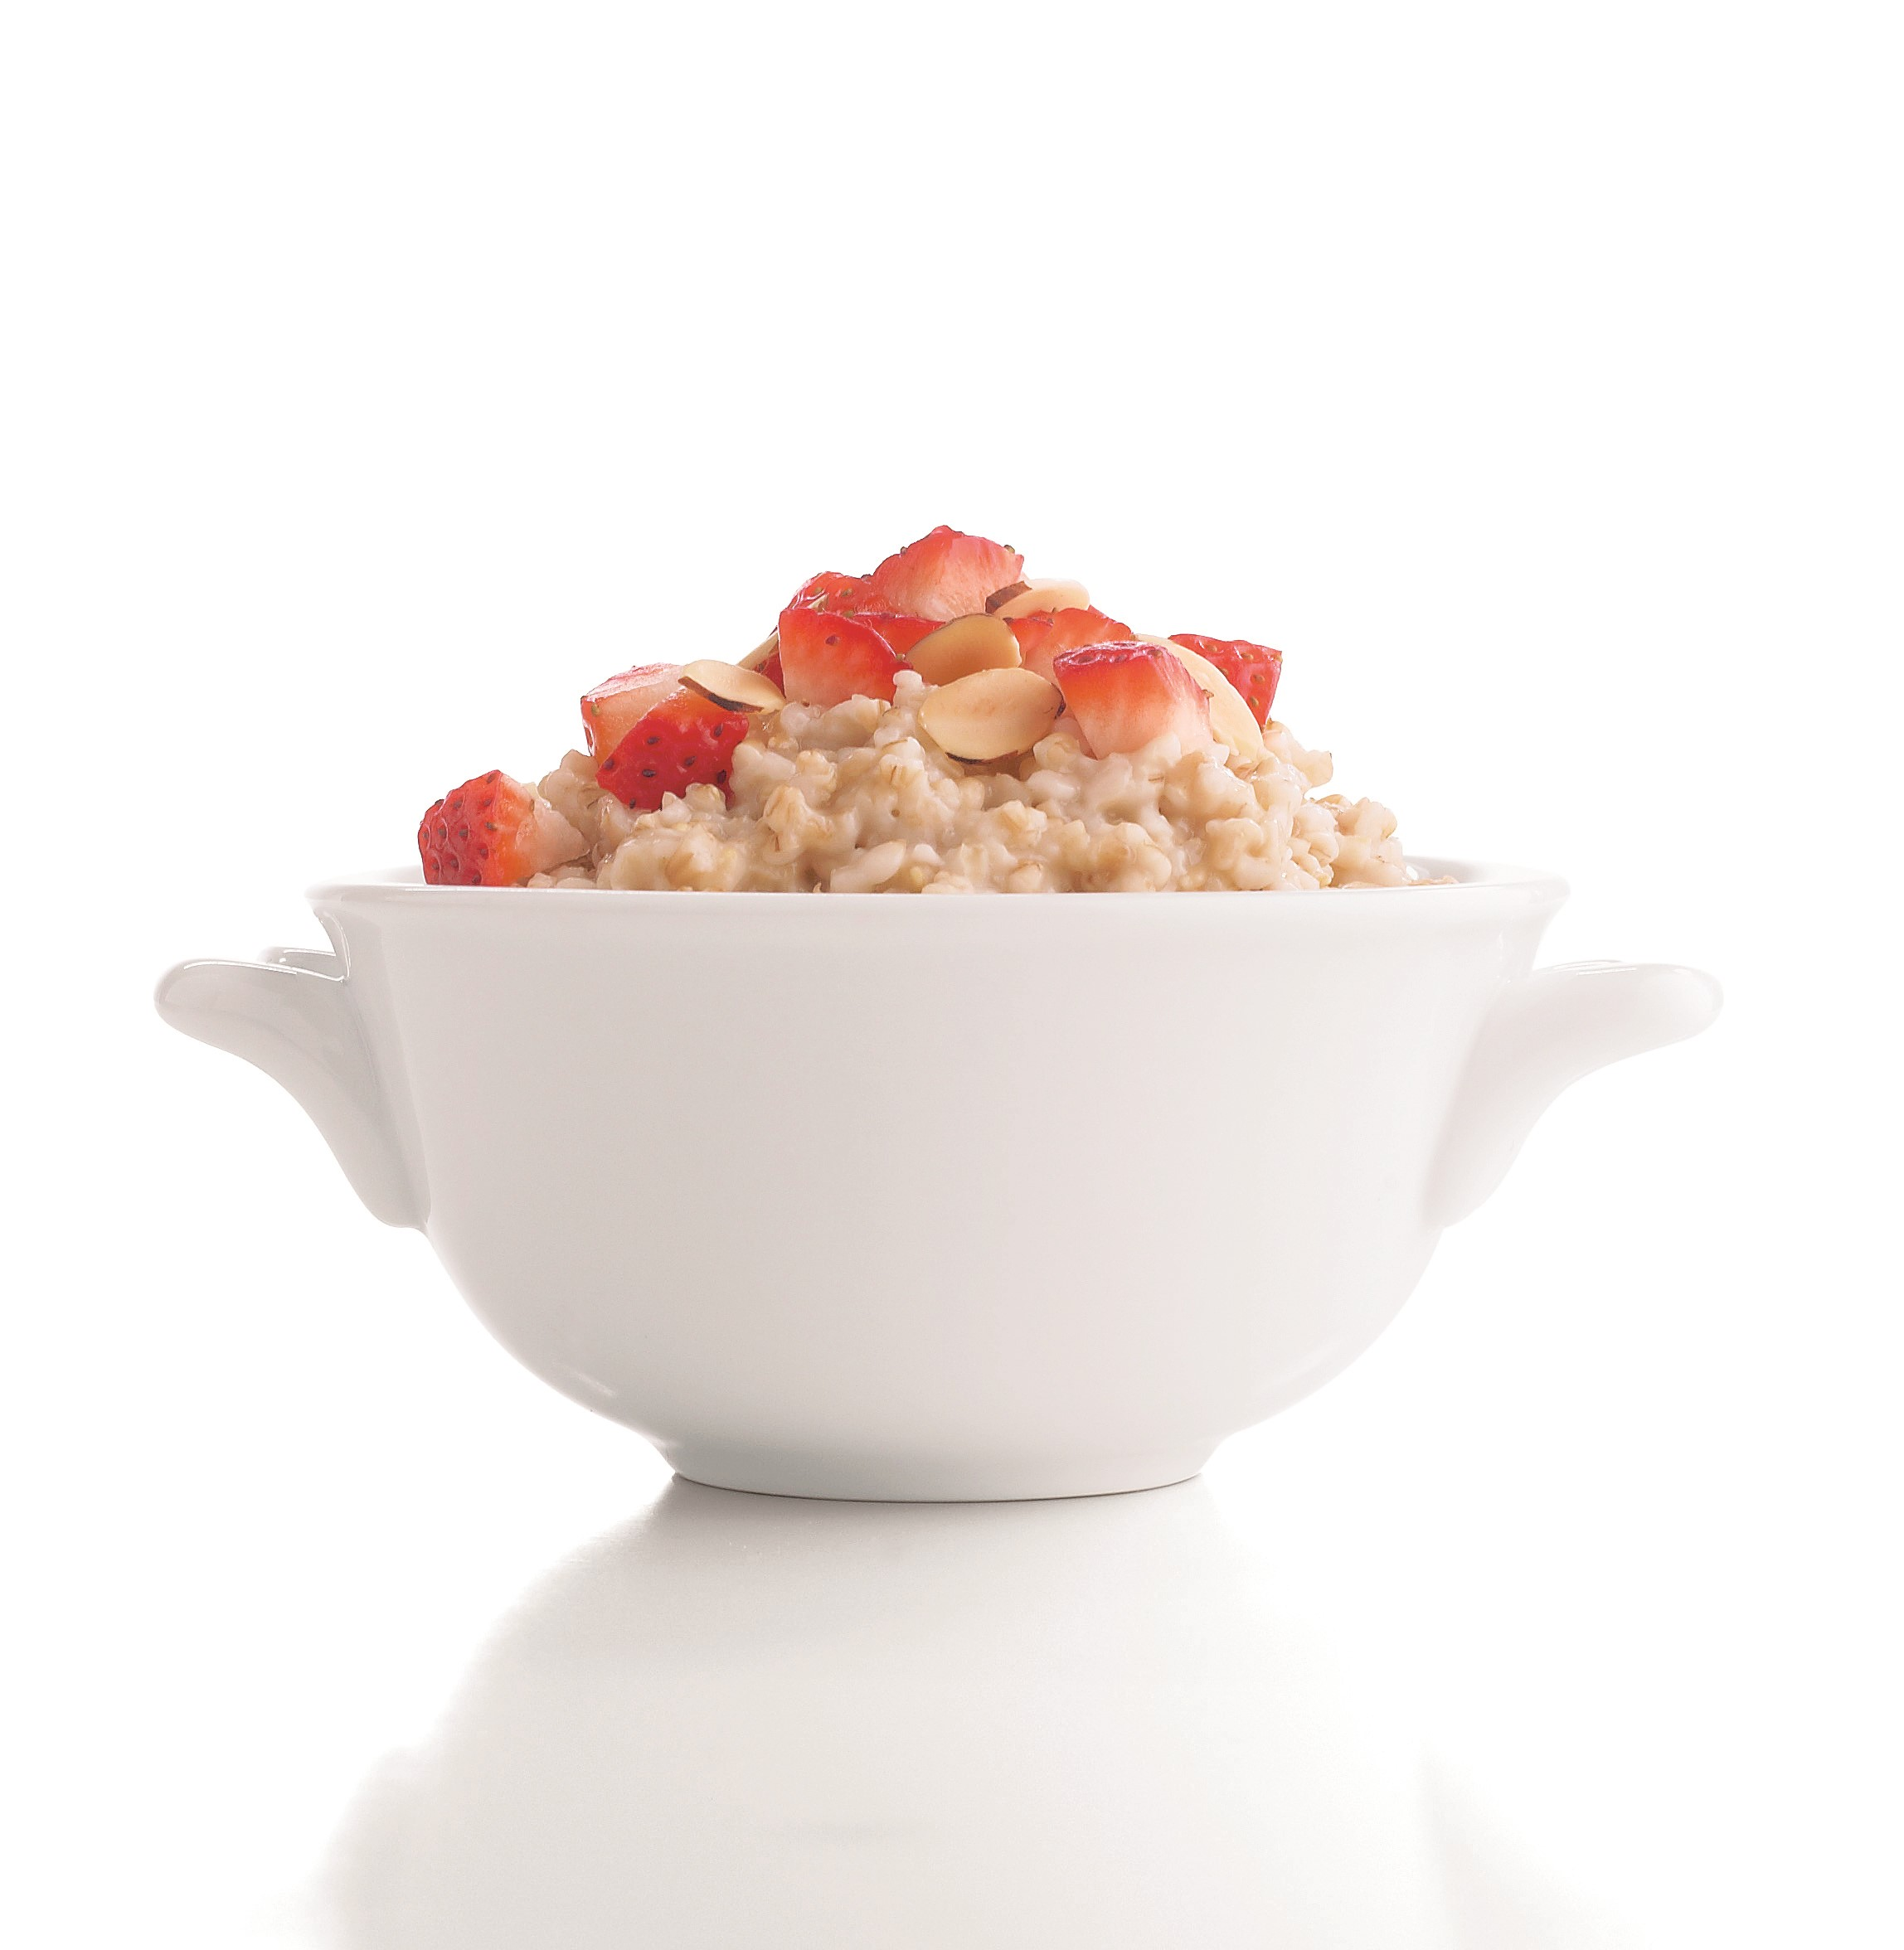 Bowl of Oatmeal with Strawberries and Sliced Almonds